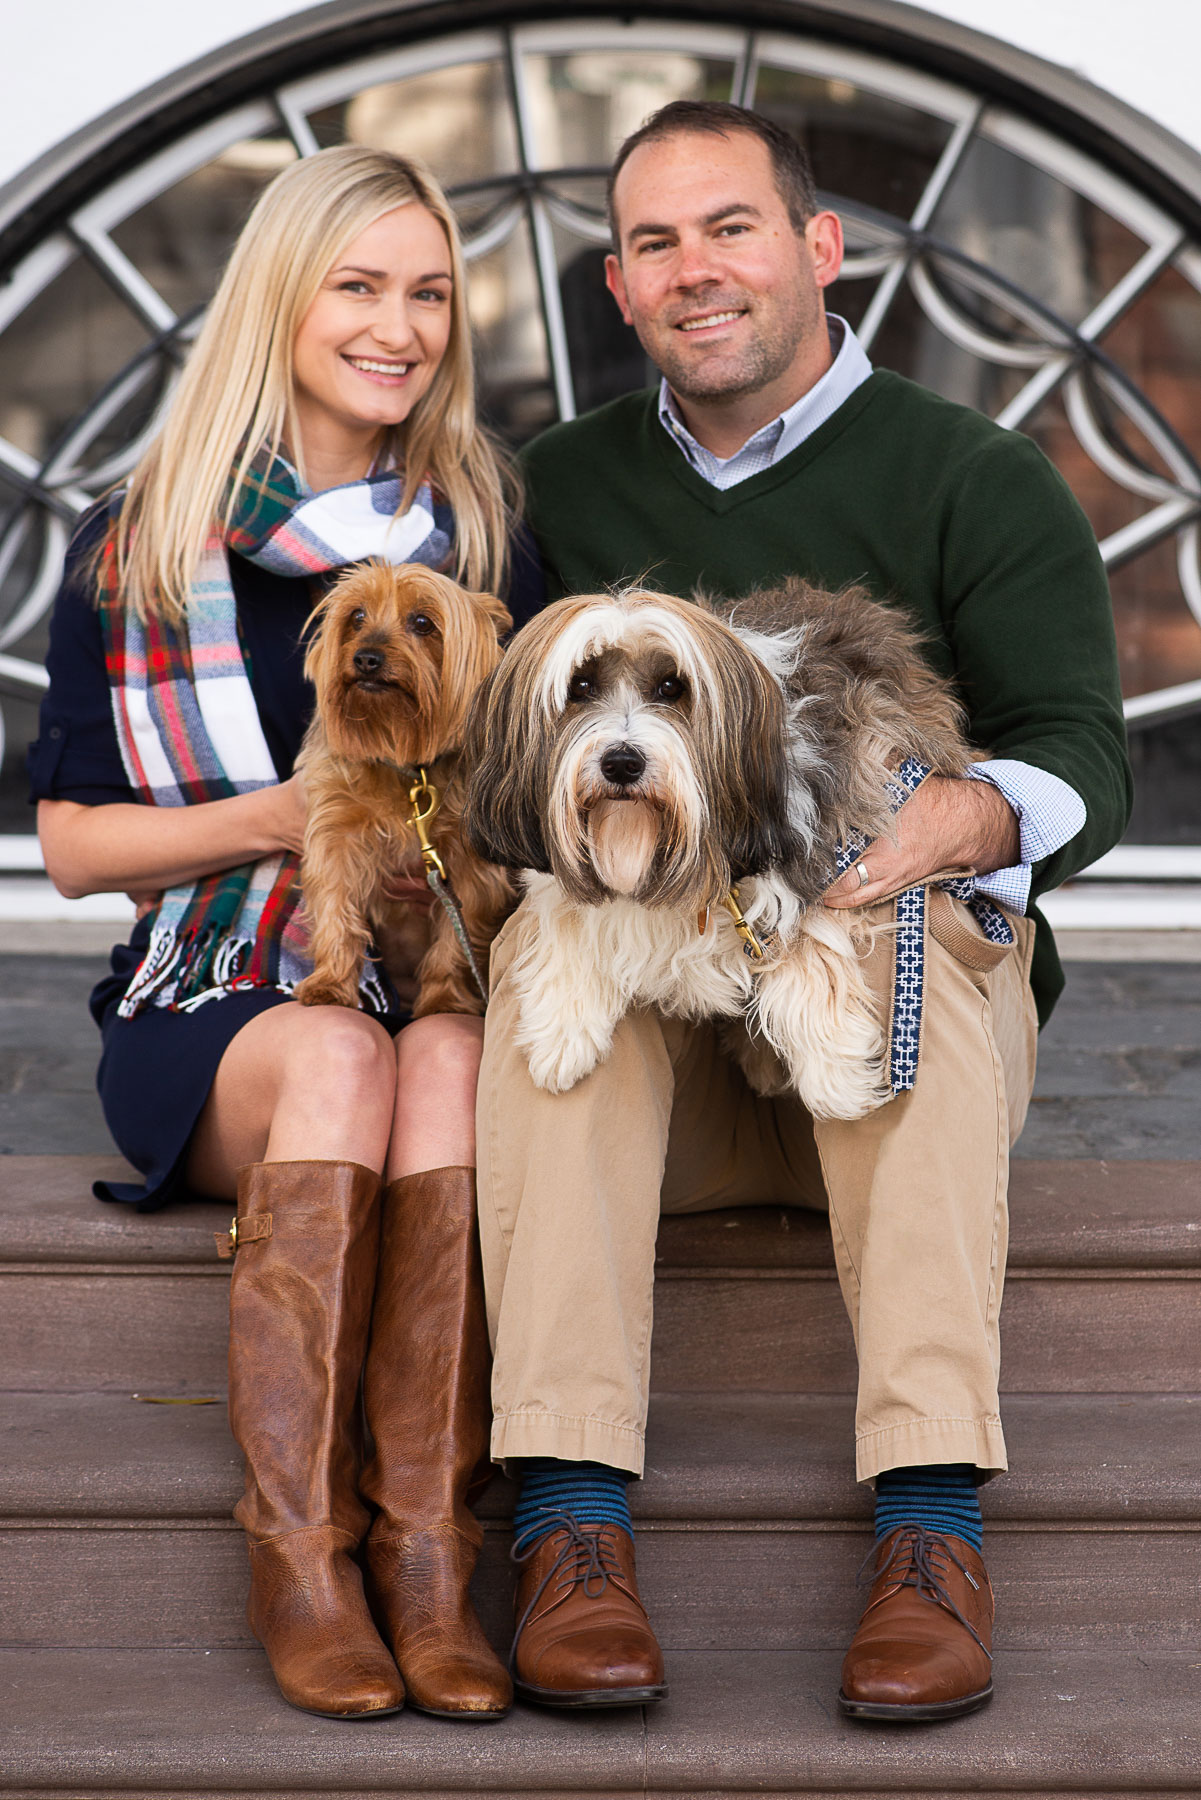 Charleston Christmas Card Photos